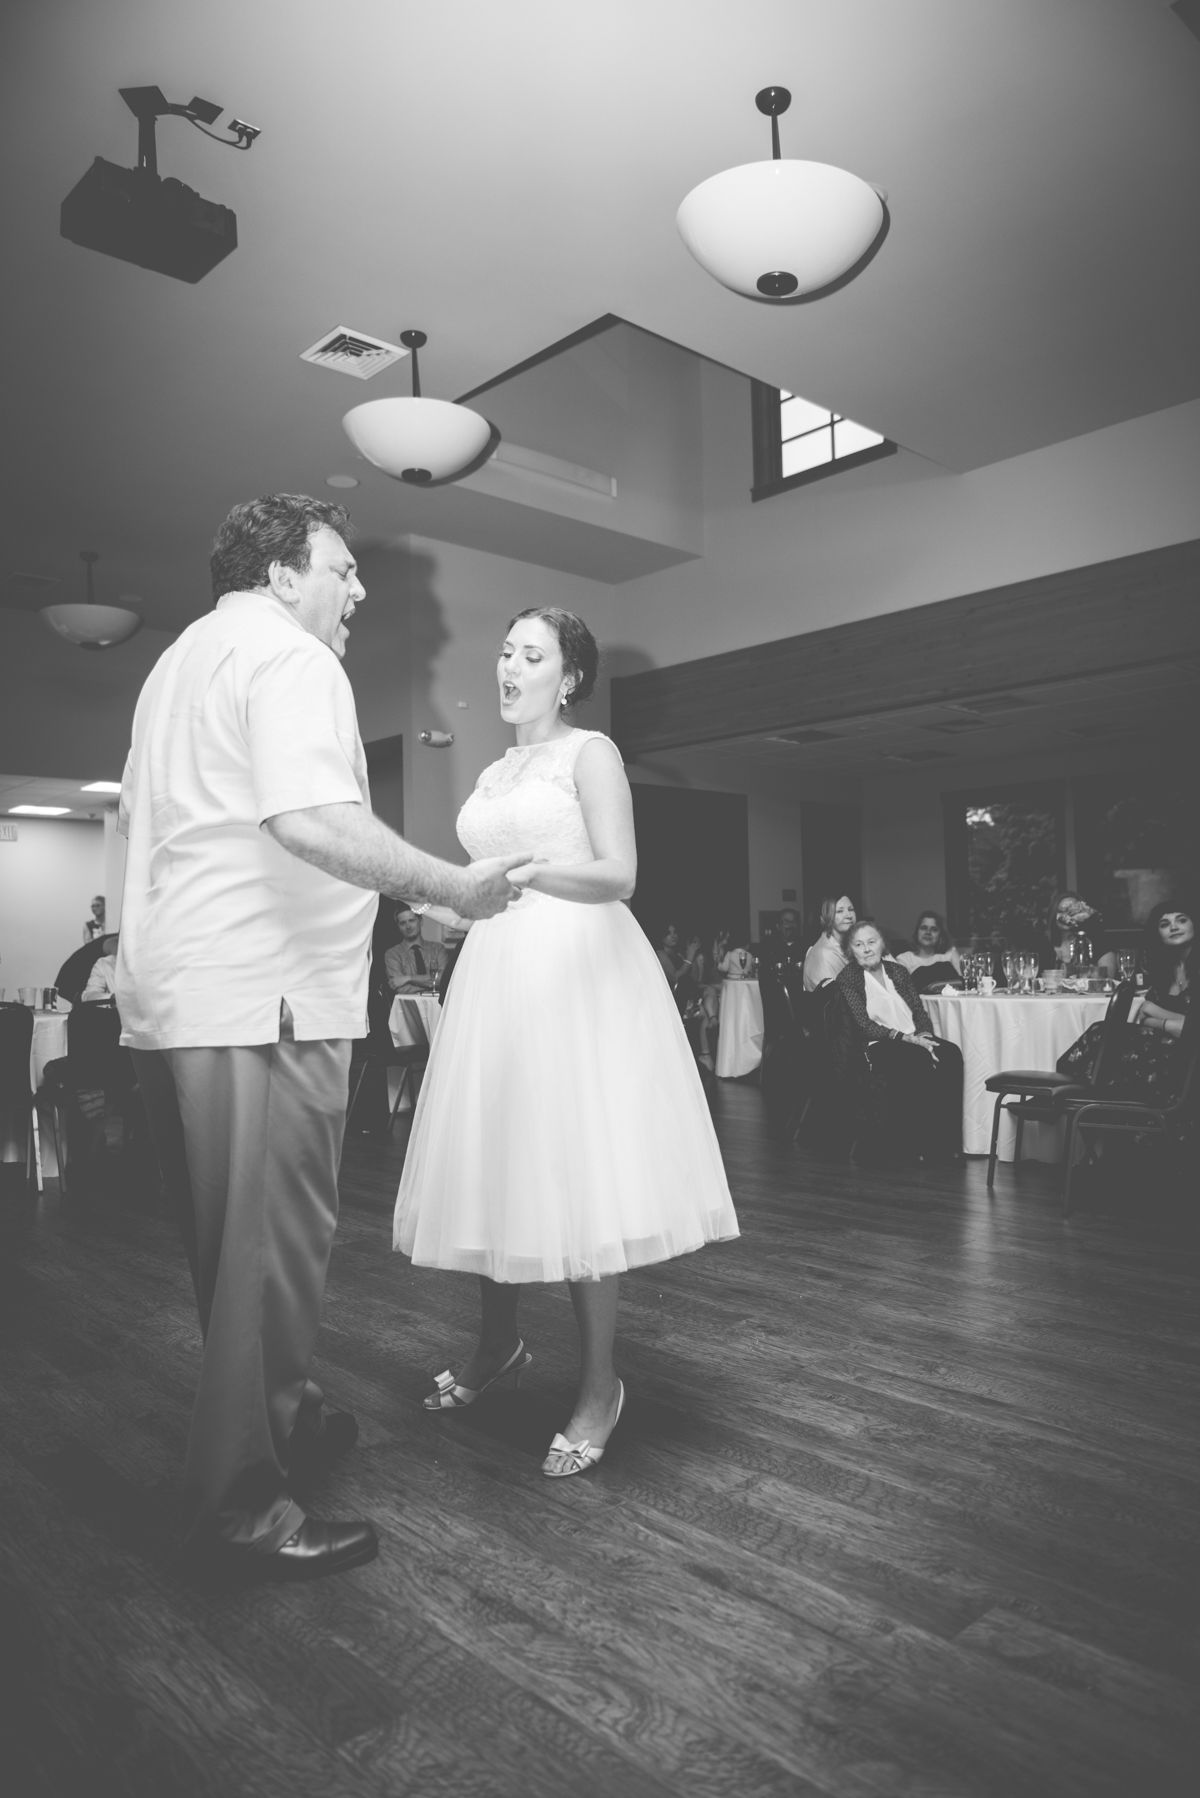 H_AMW_Blog_Dancing_n-Mather_Wedding_blog-1568